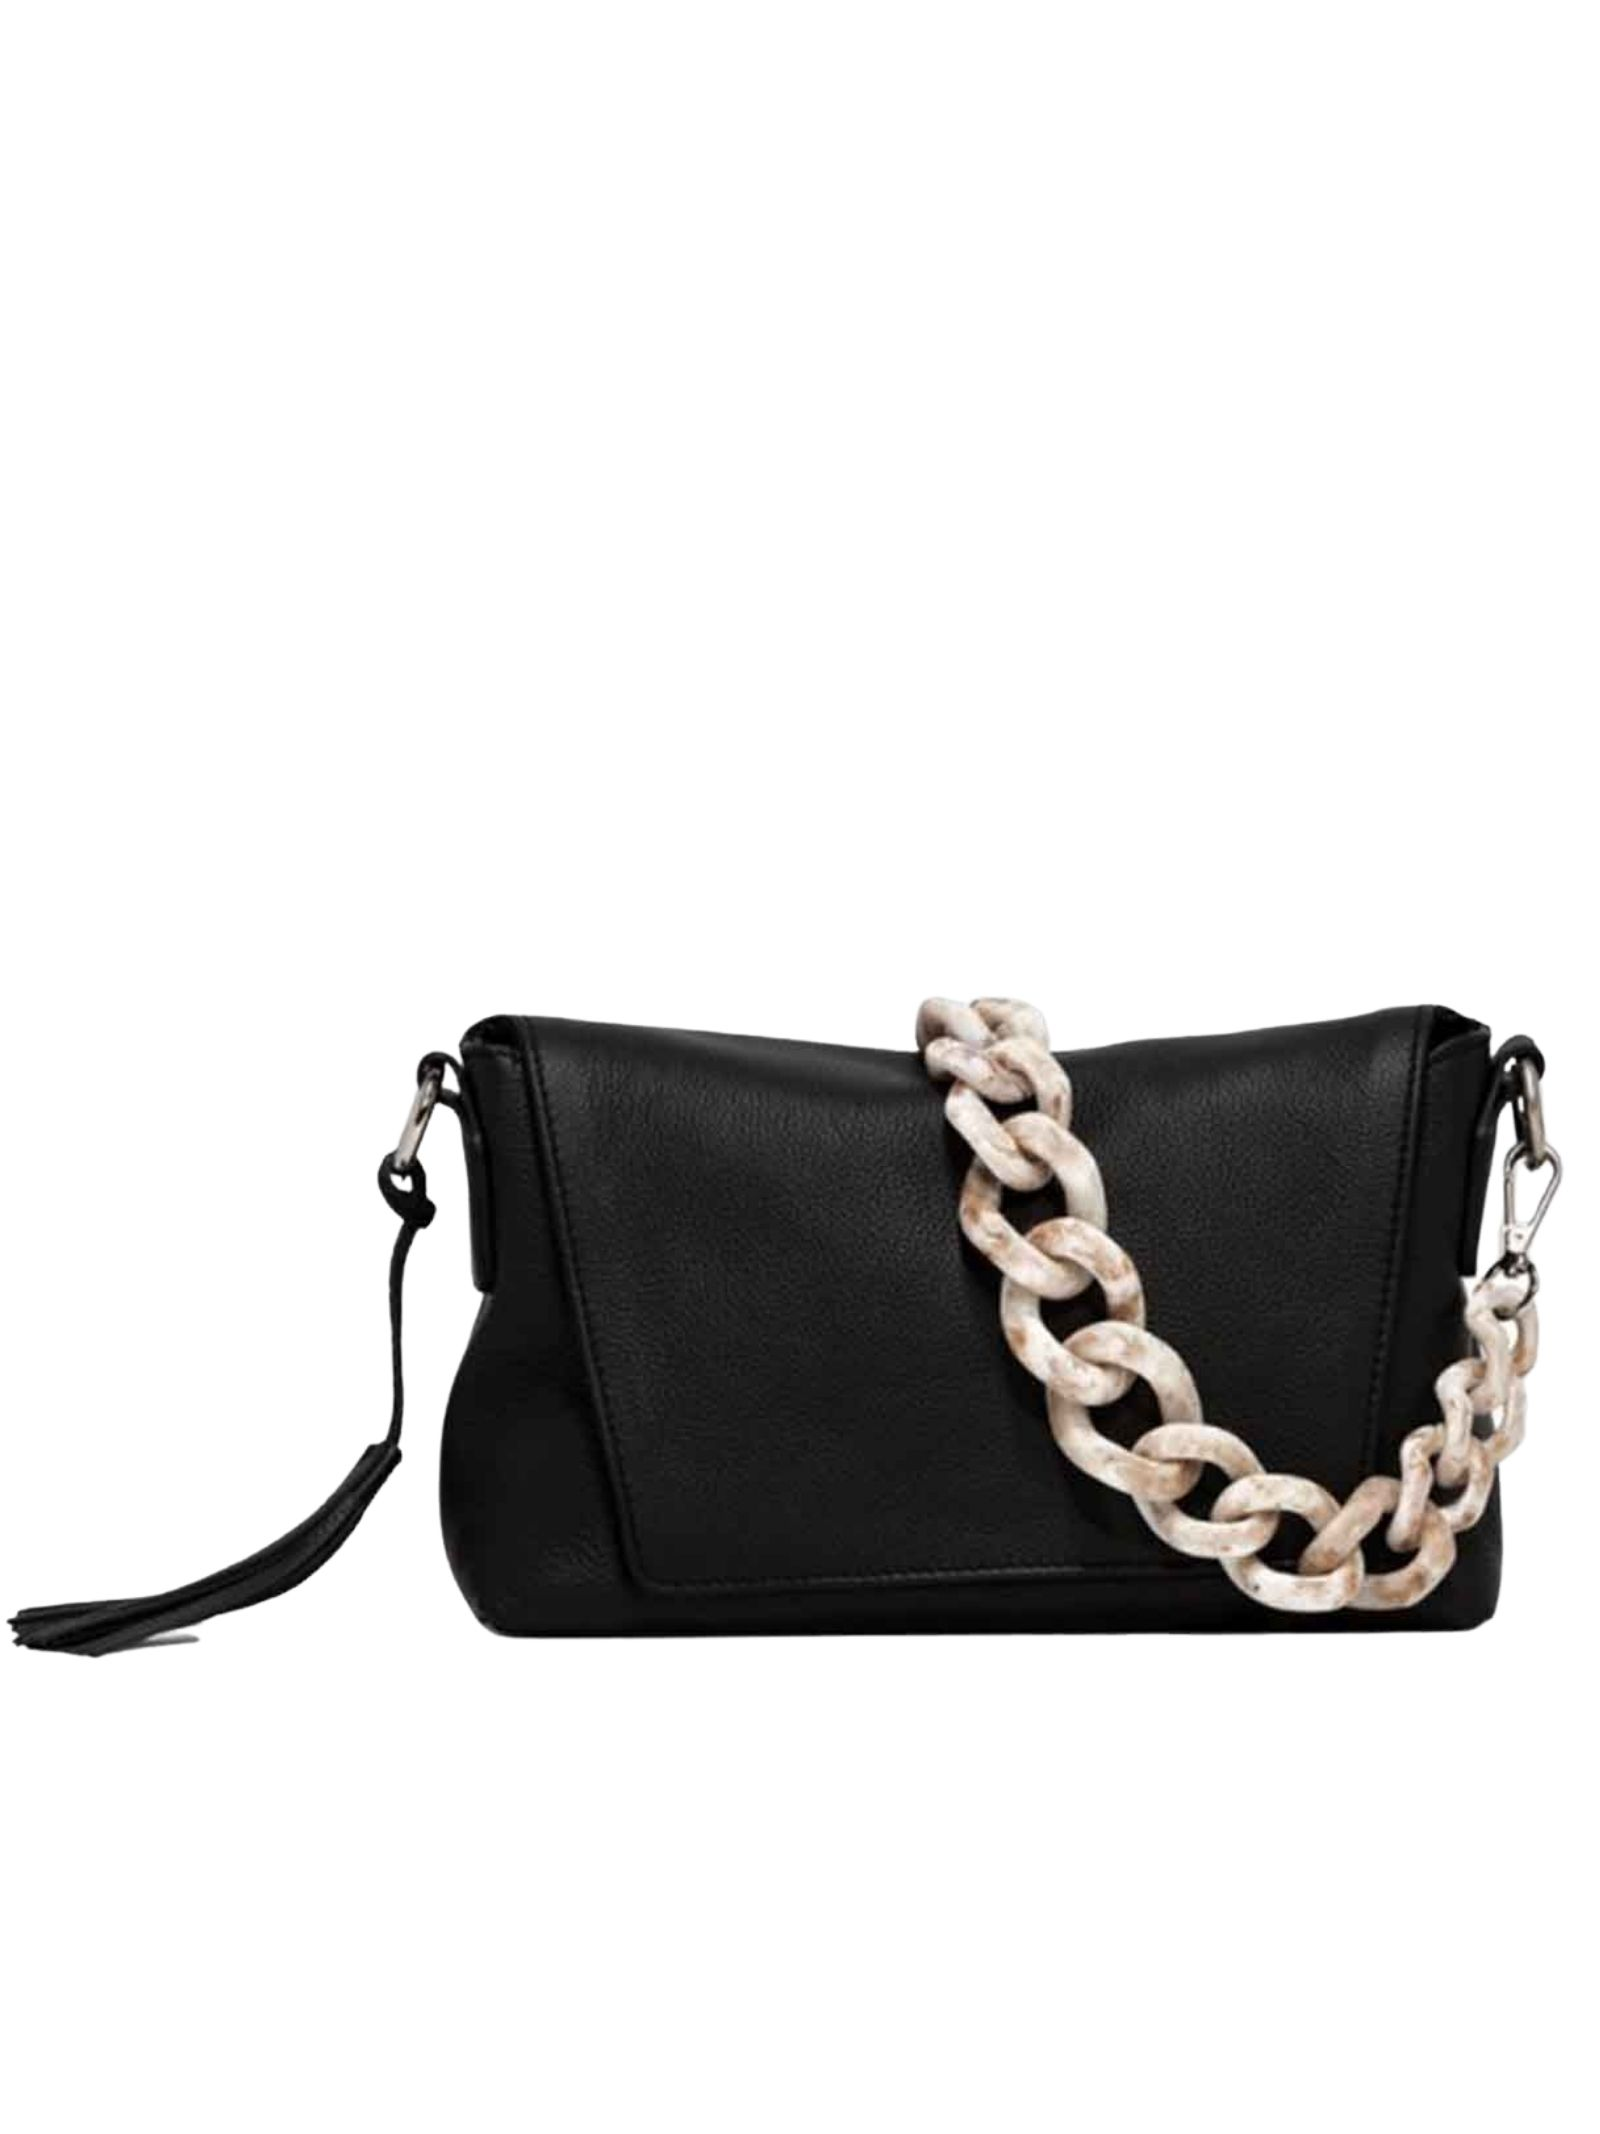 Africa Woman Shoulder Bag In Black Leather With Chain Handle And Adjustable And Removable Shoulder Strap Gianni Chiarini | Bags and backpacks | BS778611731